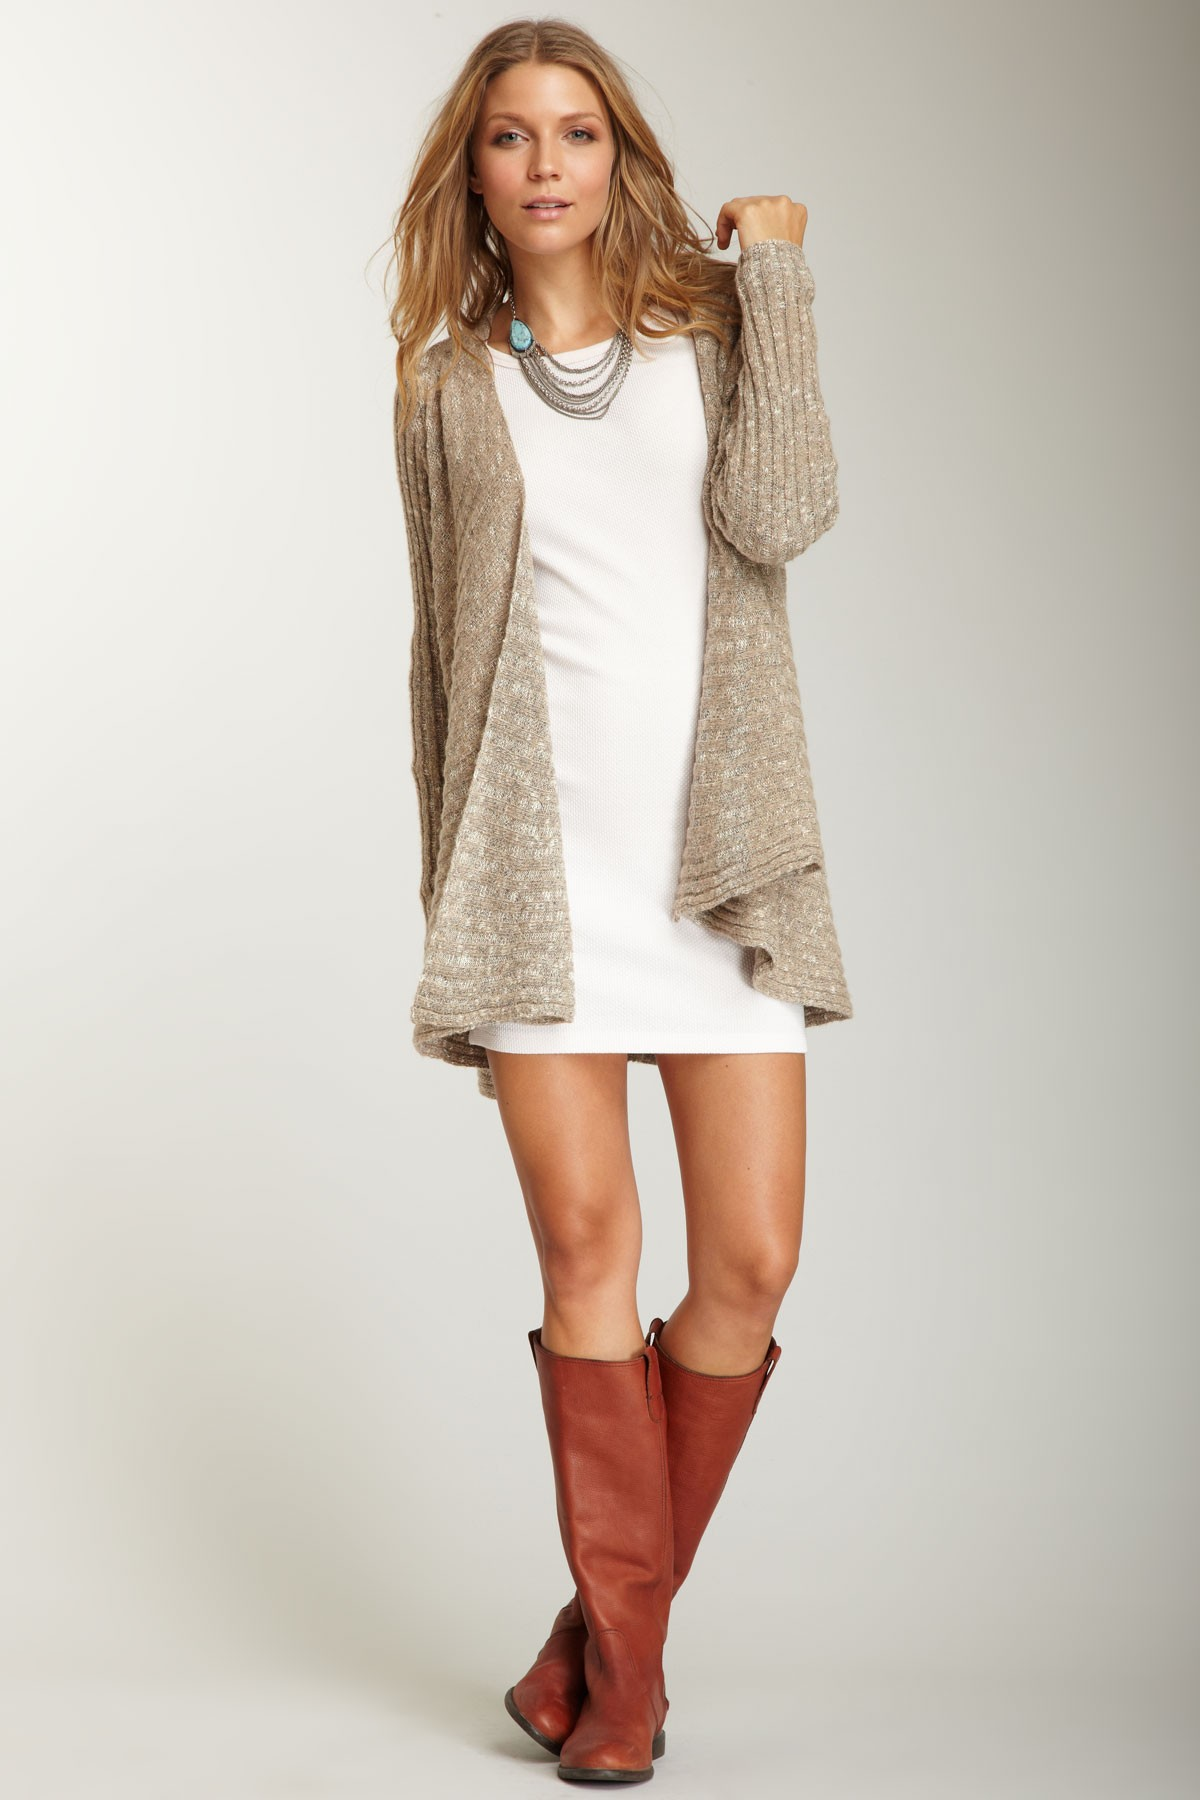 15 Best Ways To Wear Long Cardigan Sweater Fmagcom